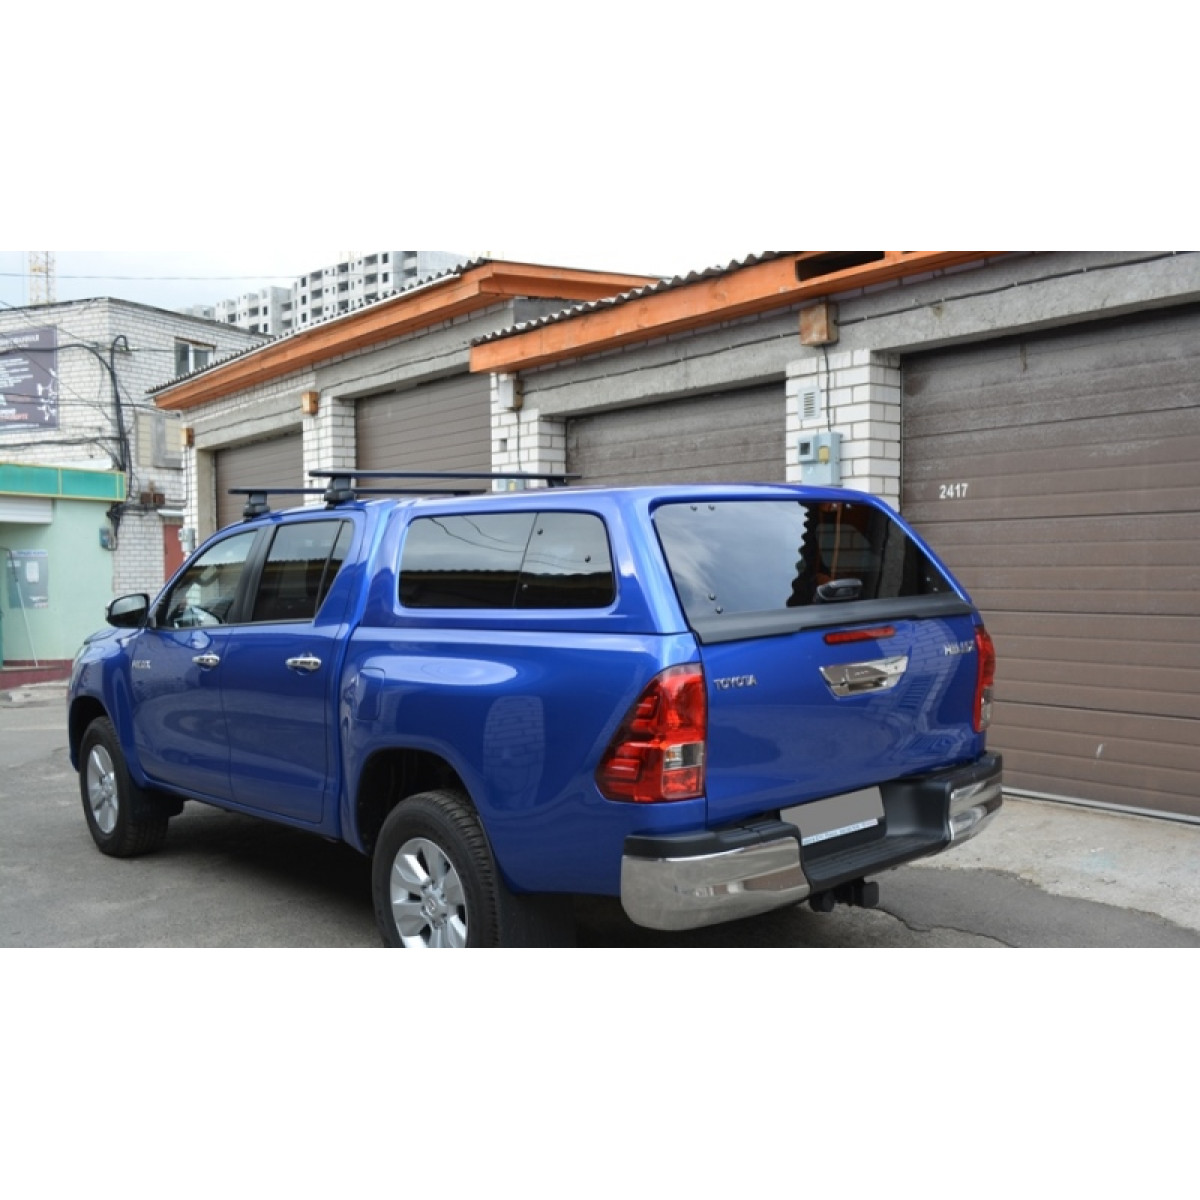 Кунг hilux 2017